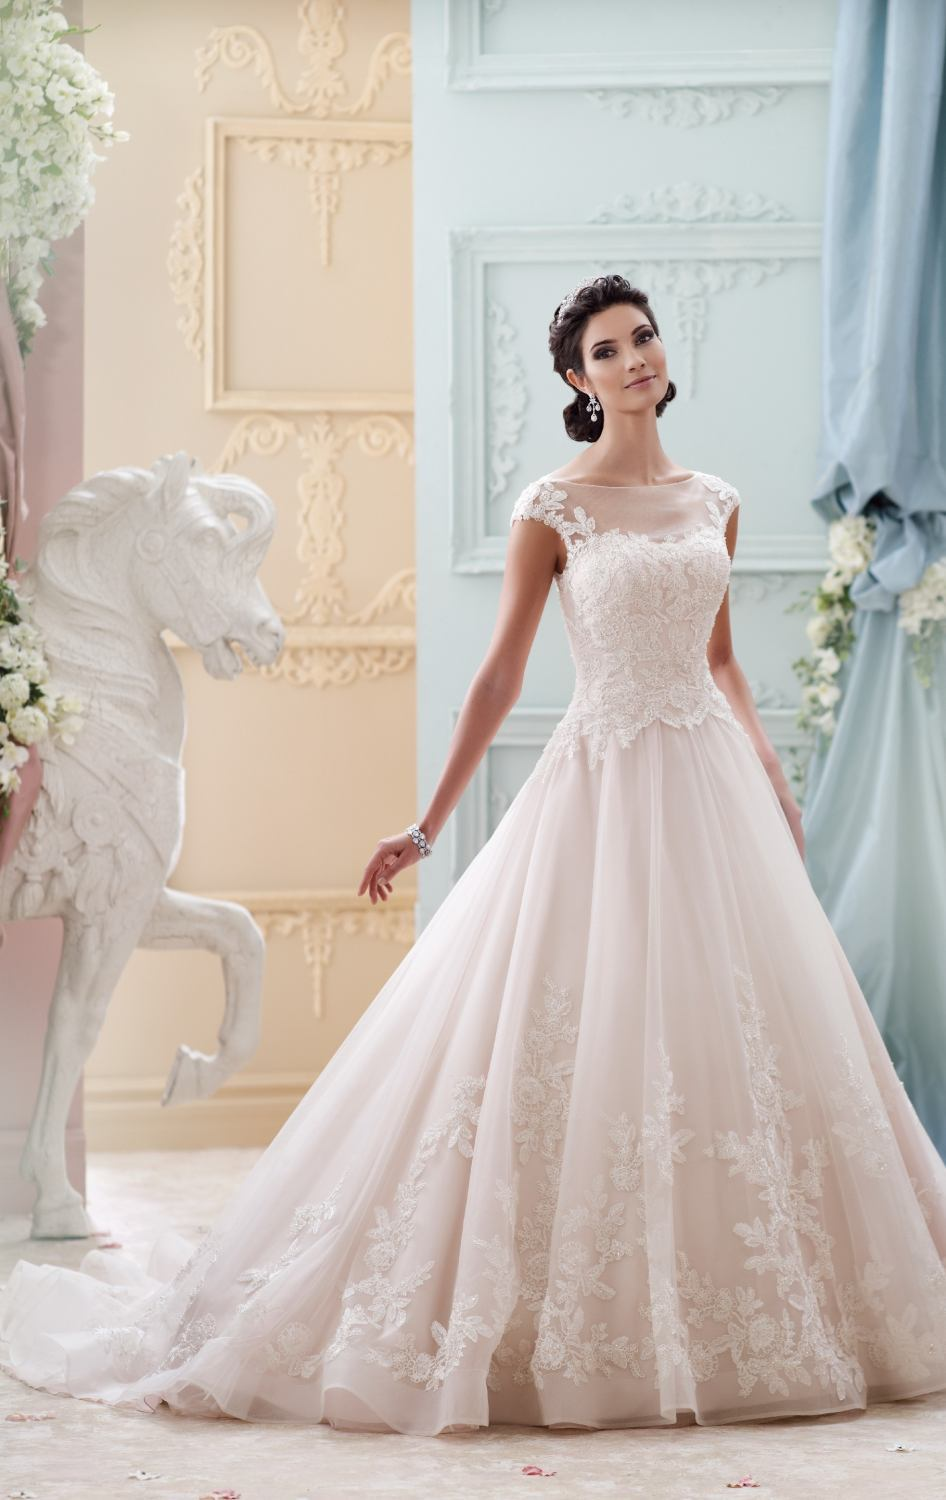 Wedding Dresses Peach - Wedding Dresses Asian